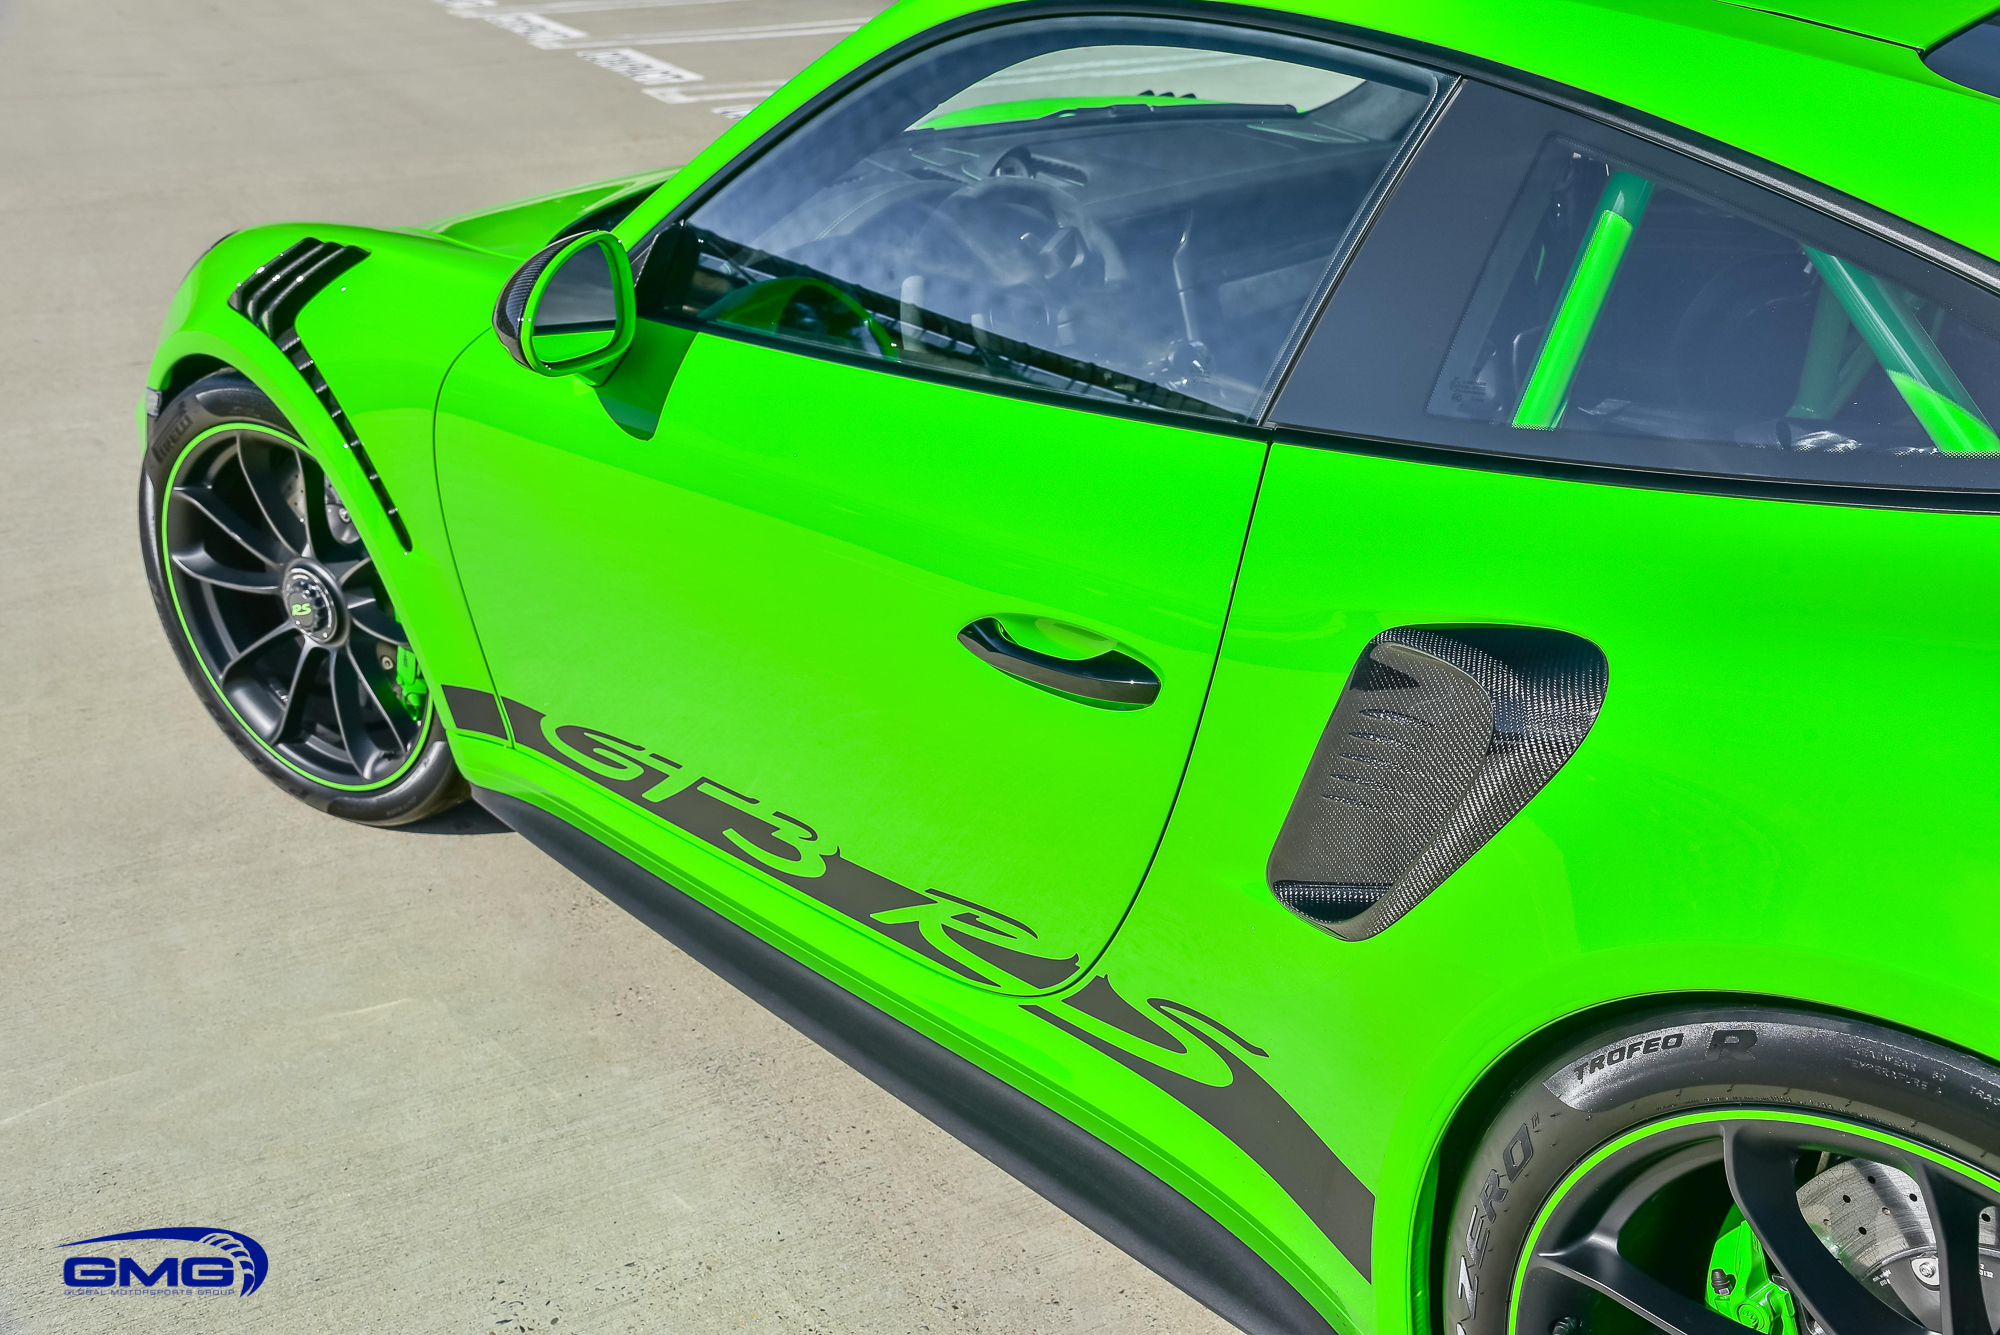 Lizard Green 991.2 GT3 RS